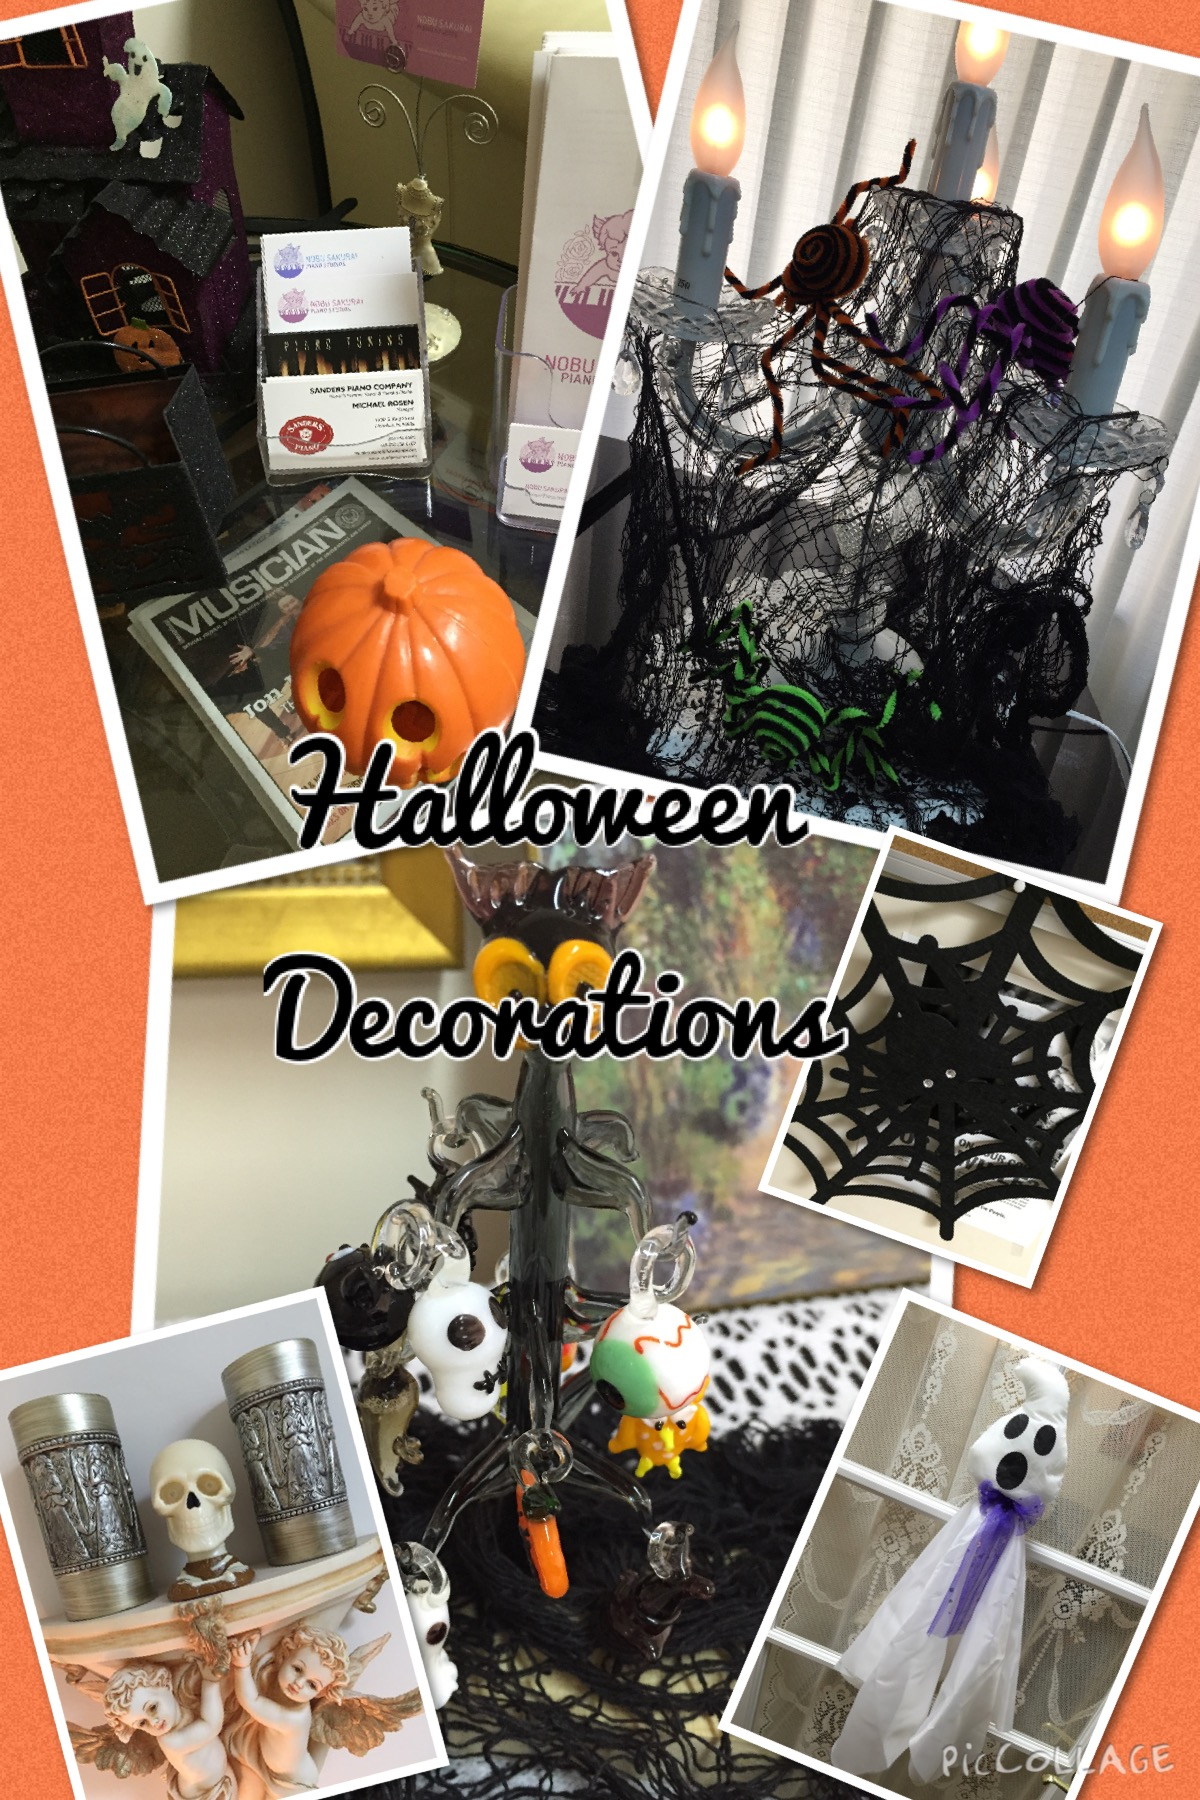 Halloween Decorations!!